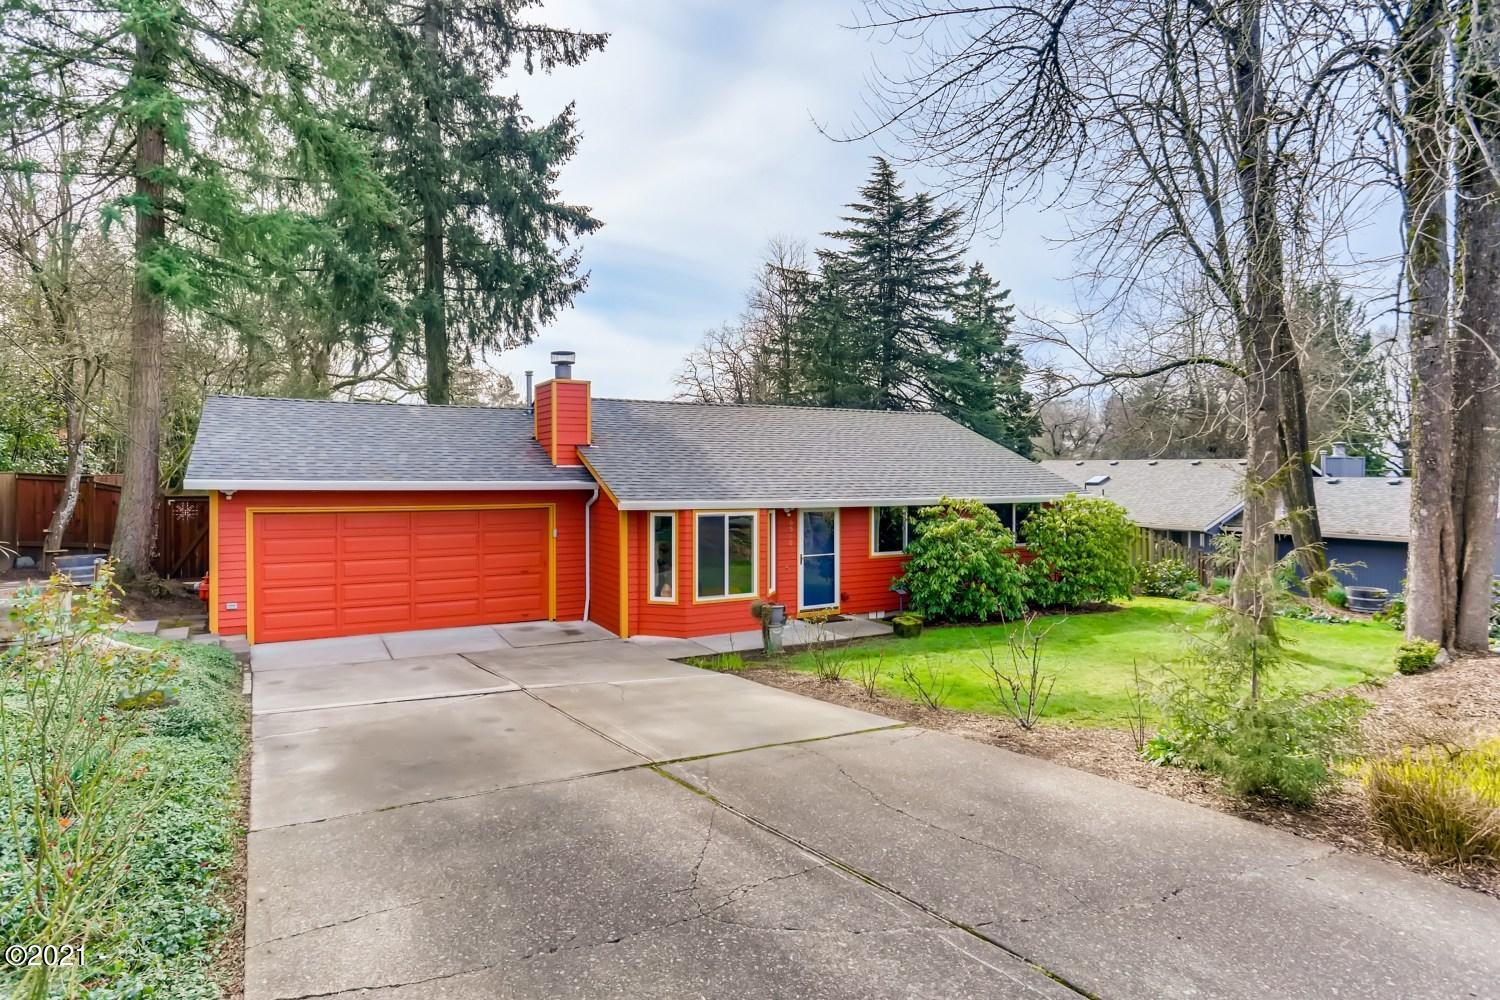 6516 SW Taylors Ferry Rd, Tigard, OR 97223-2204